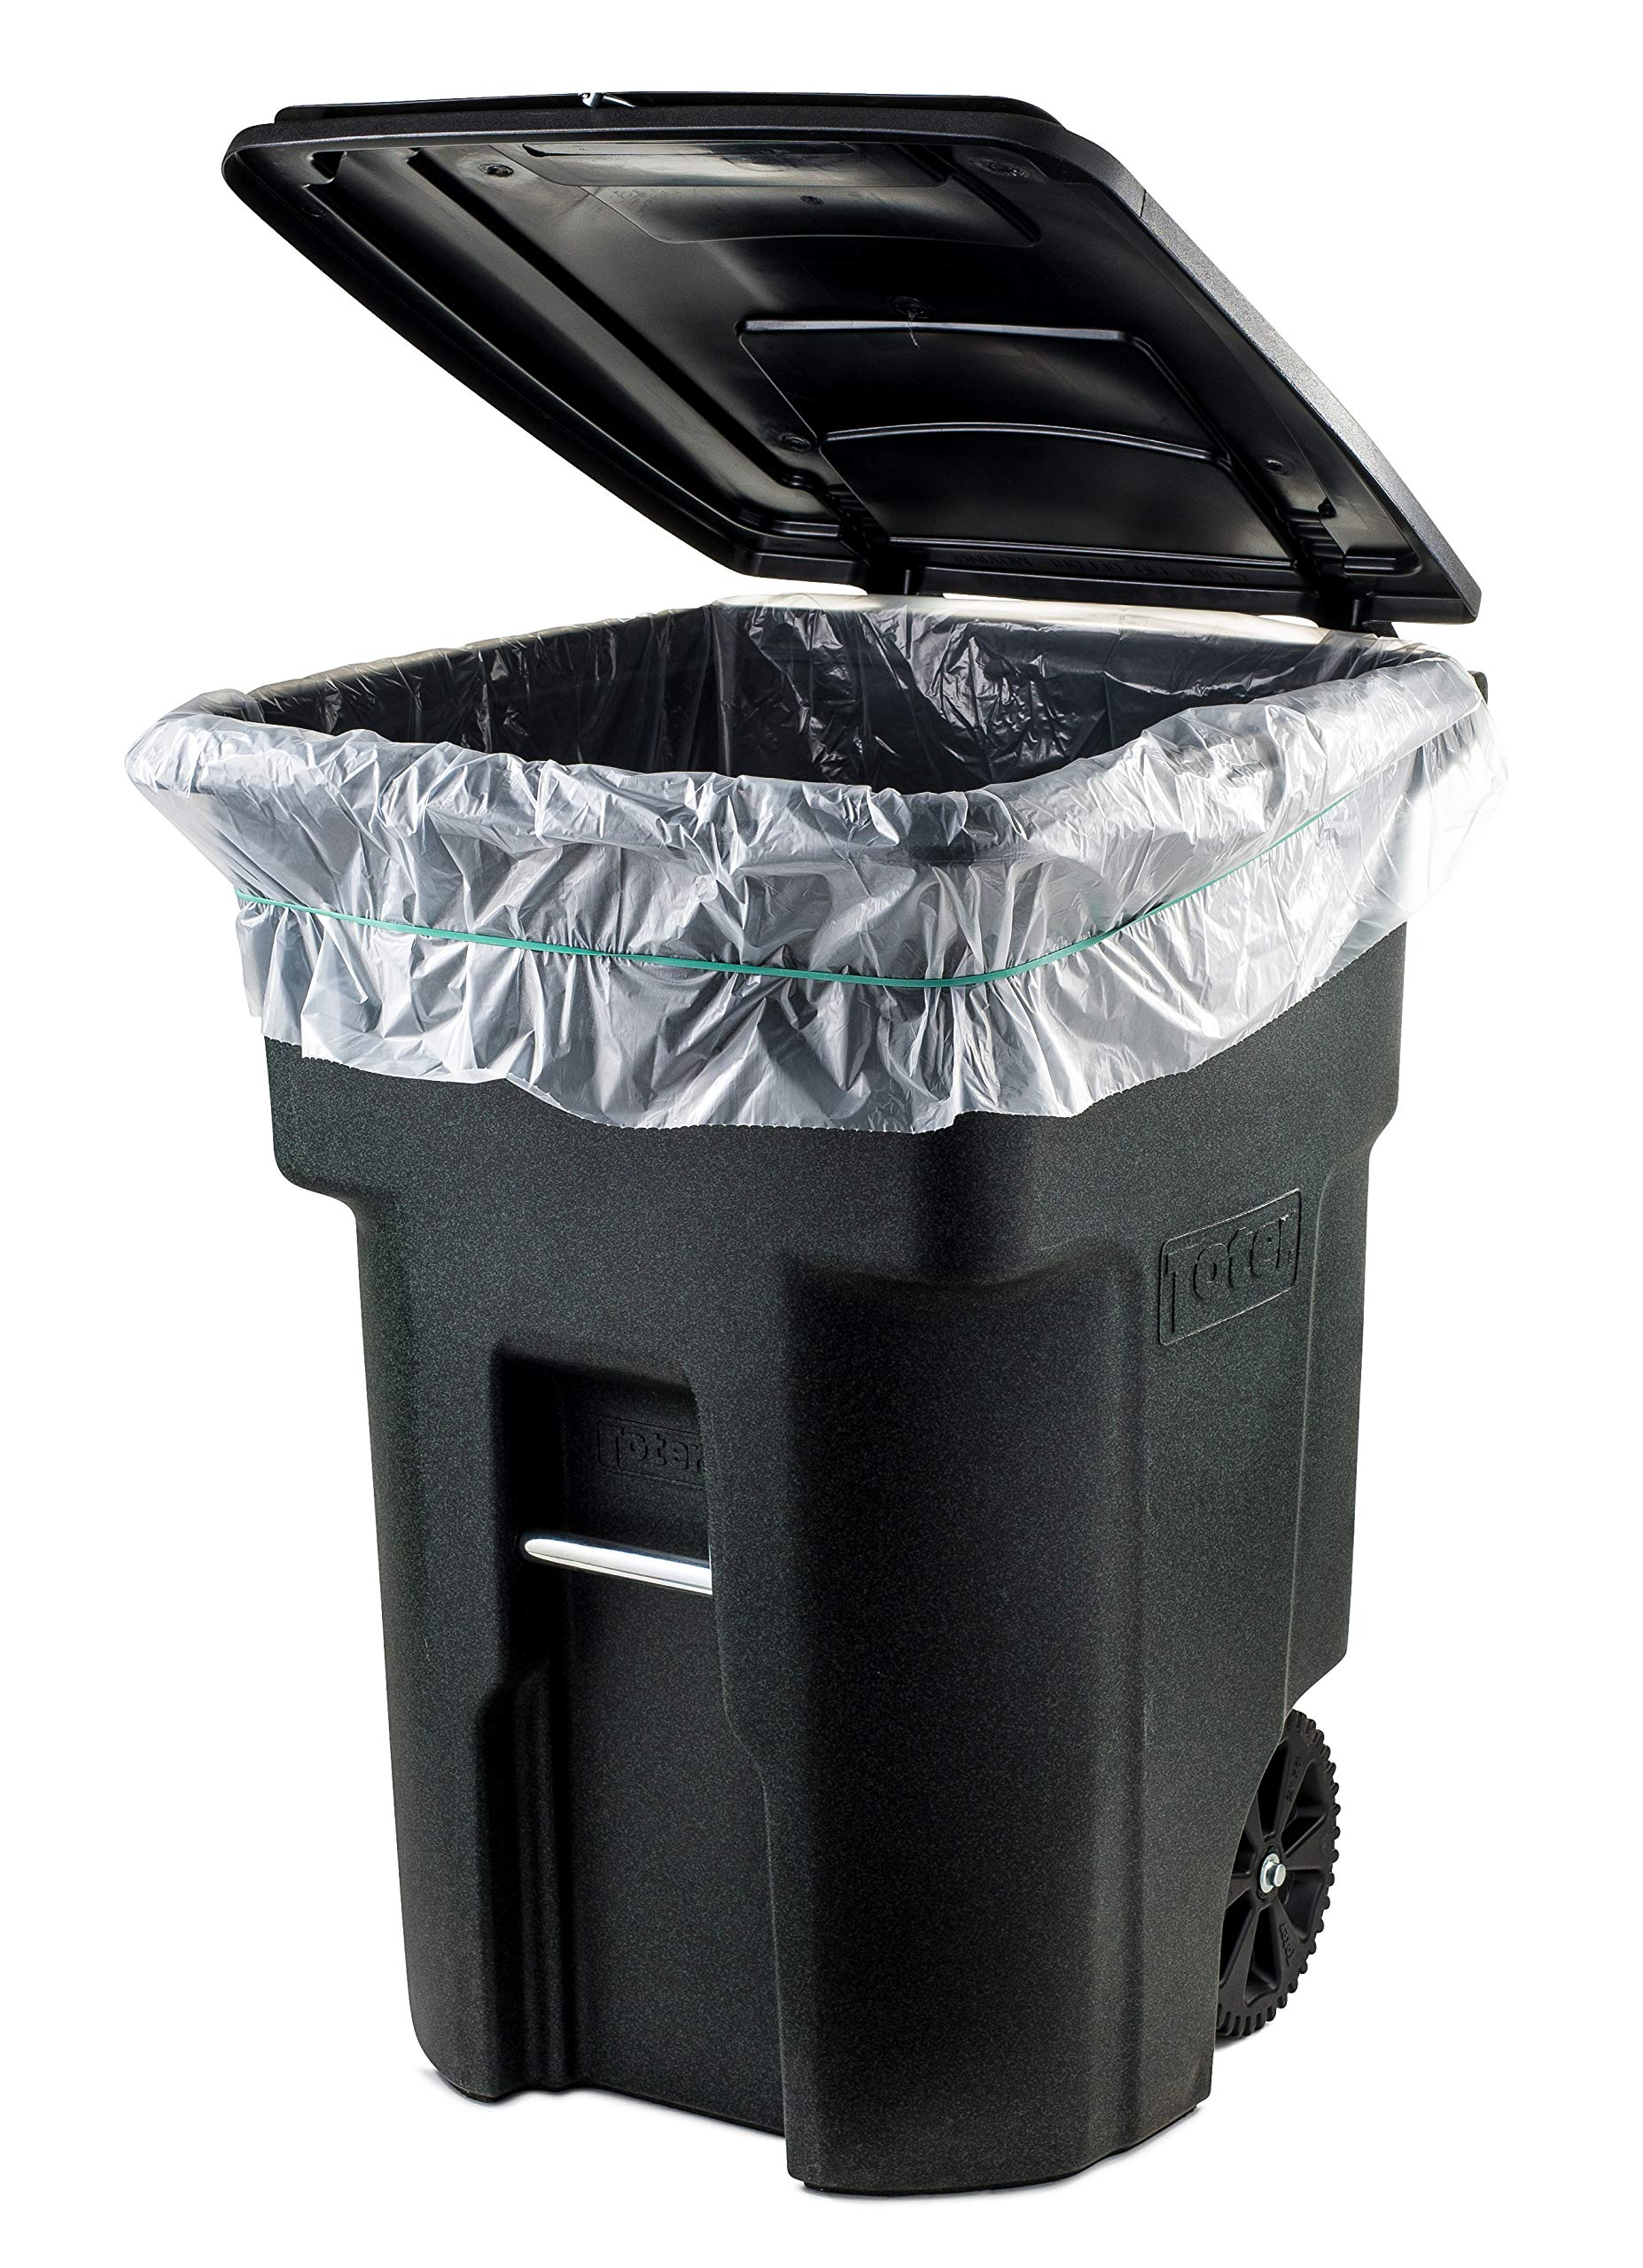 Plasticplace 64-65 Gallon Trash Can Liners for Toter │ 1.5 Mil │ Clear Heavy Duty Garbage Bags │ 50'' x 60'' (50 Count)